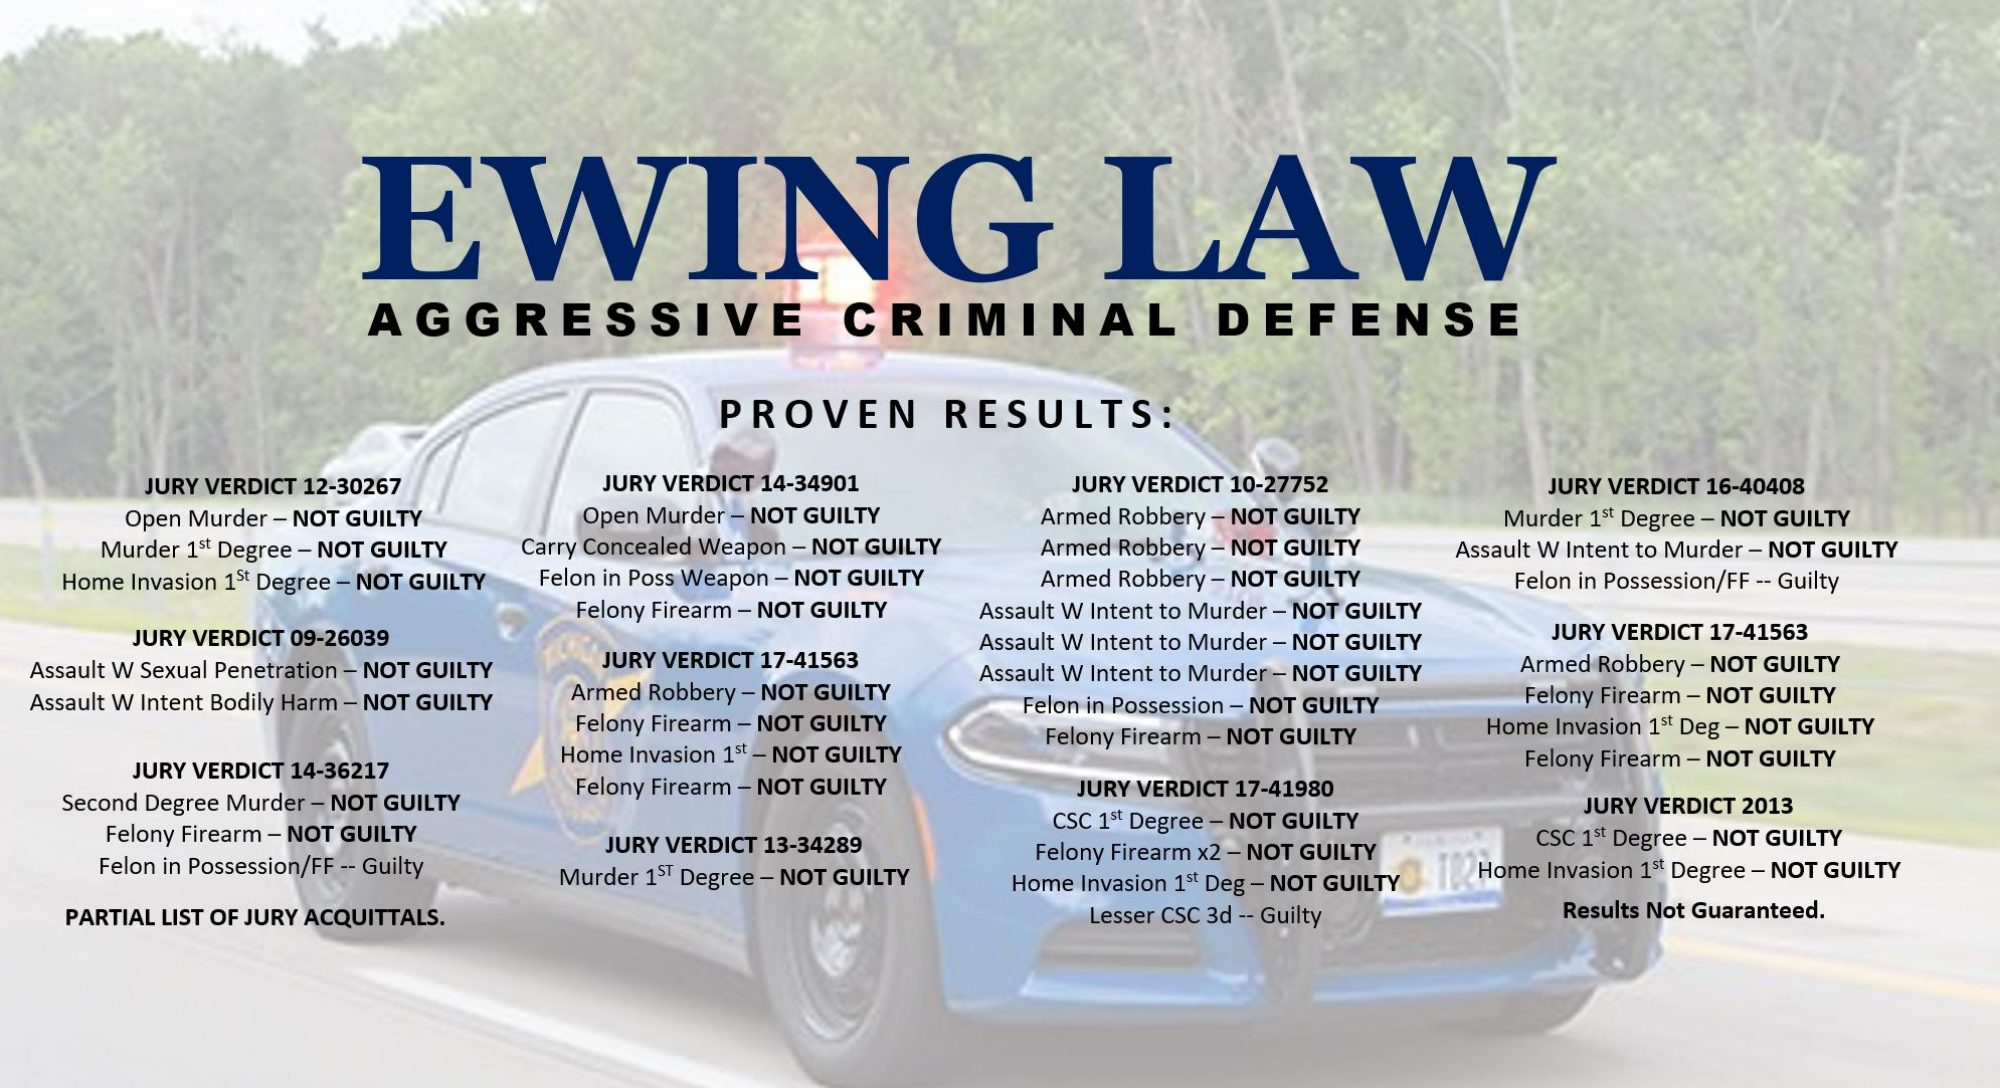 EWING LAW CRIMINAL DEFENSE